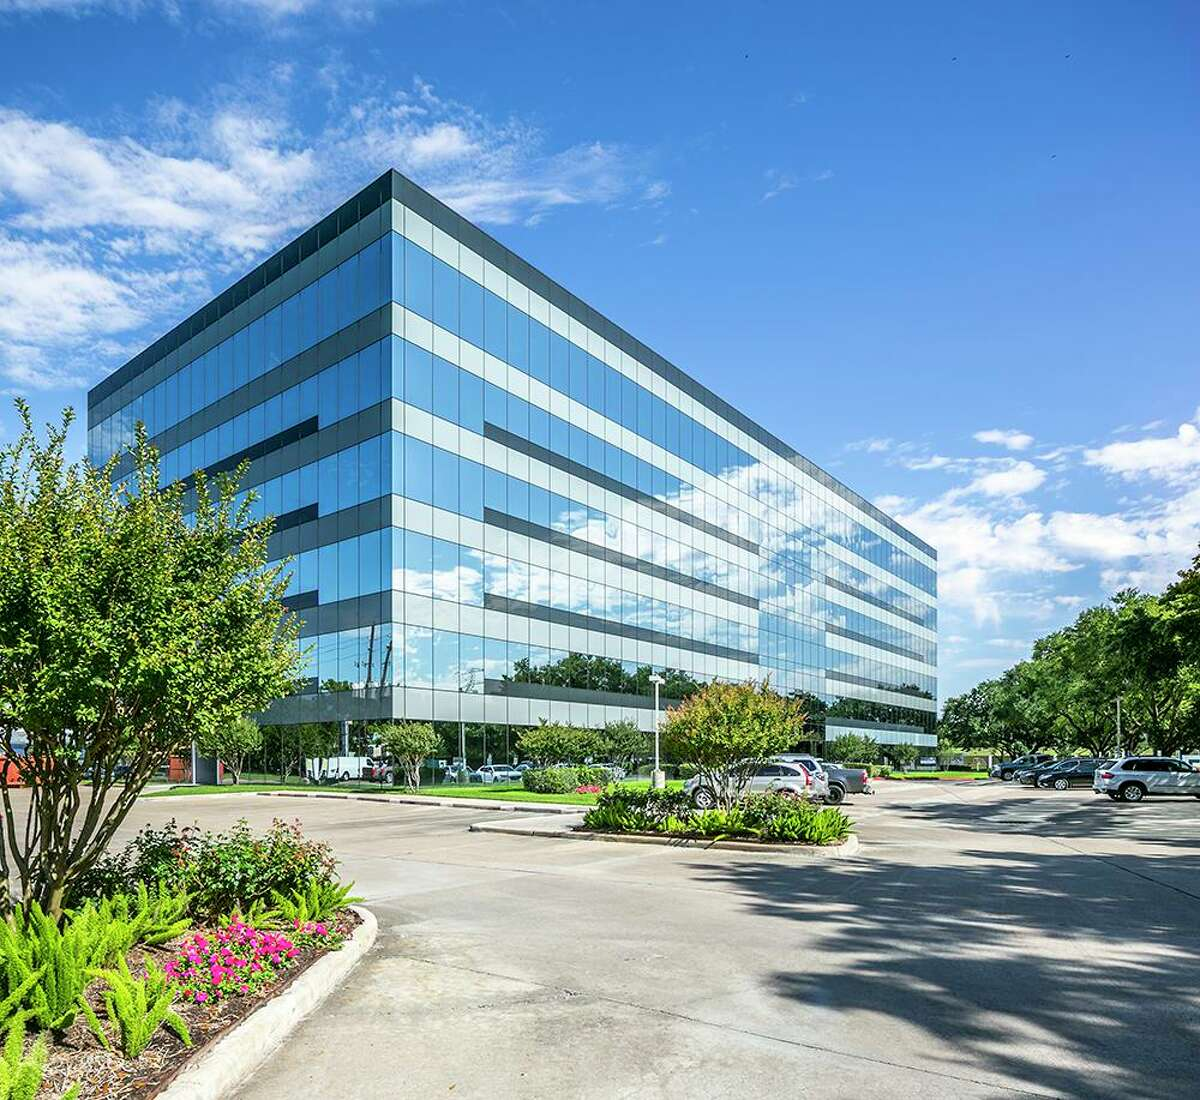 Rycore Capital purchased the 155,407-square-foot 1311 Broadfield Blvd office building in the Energy Corridor.